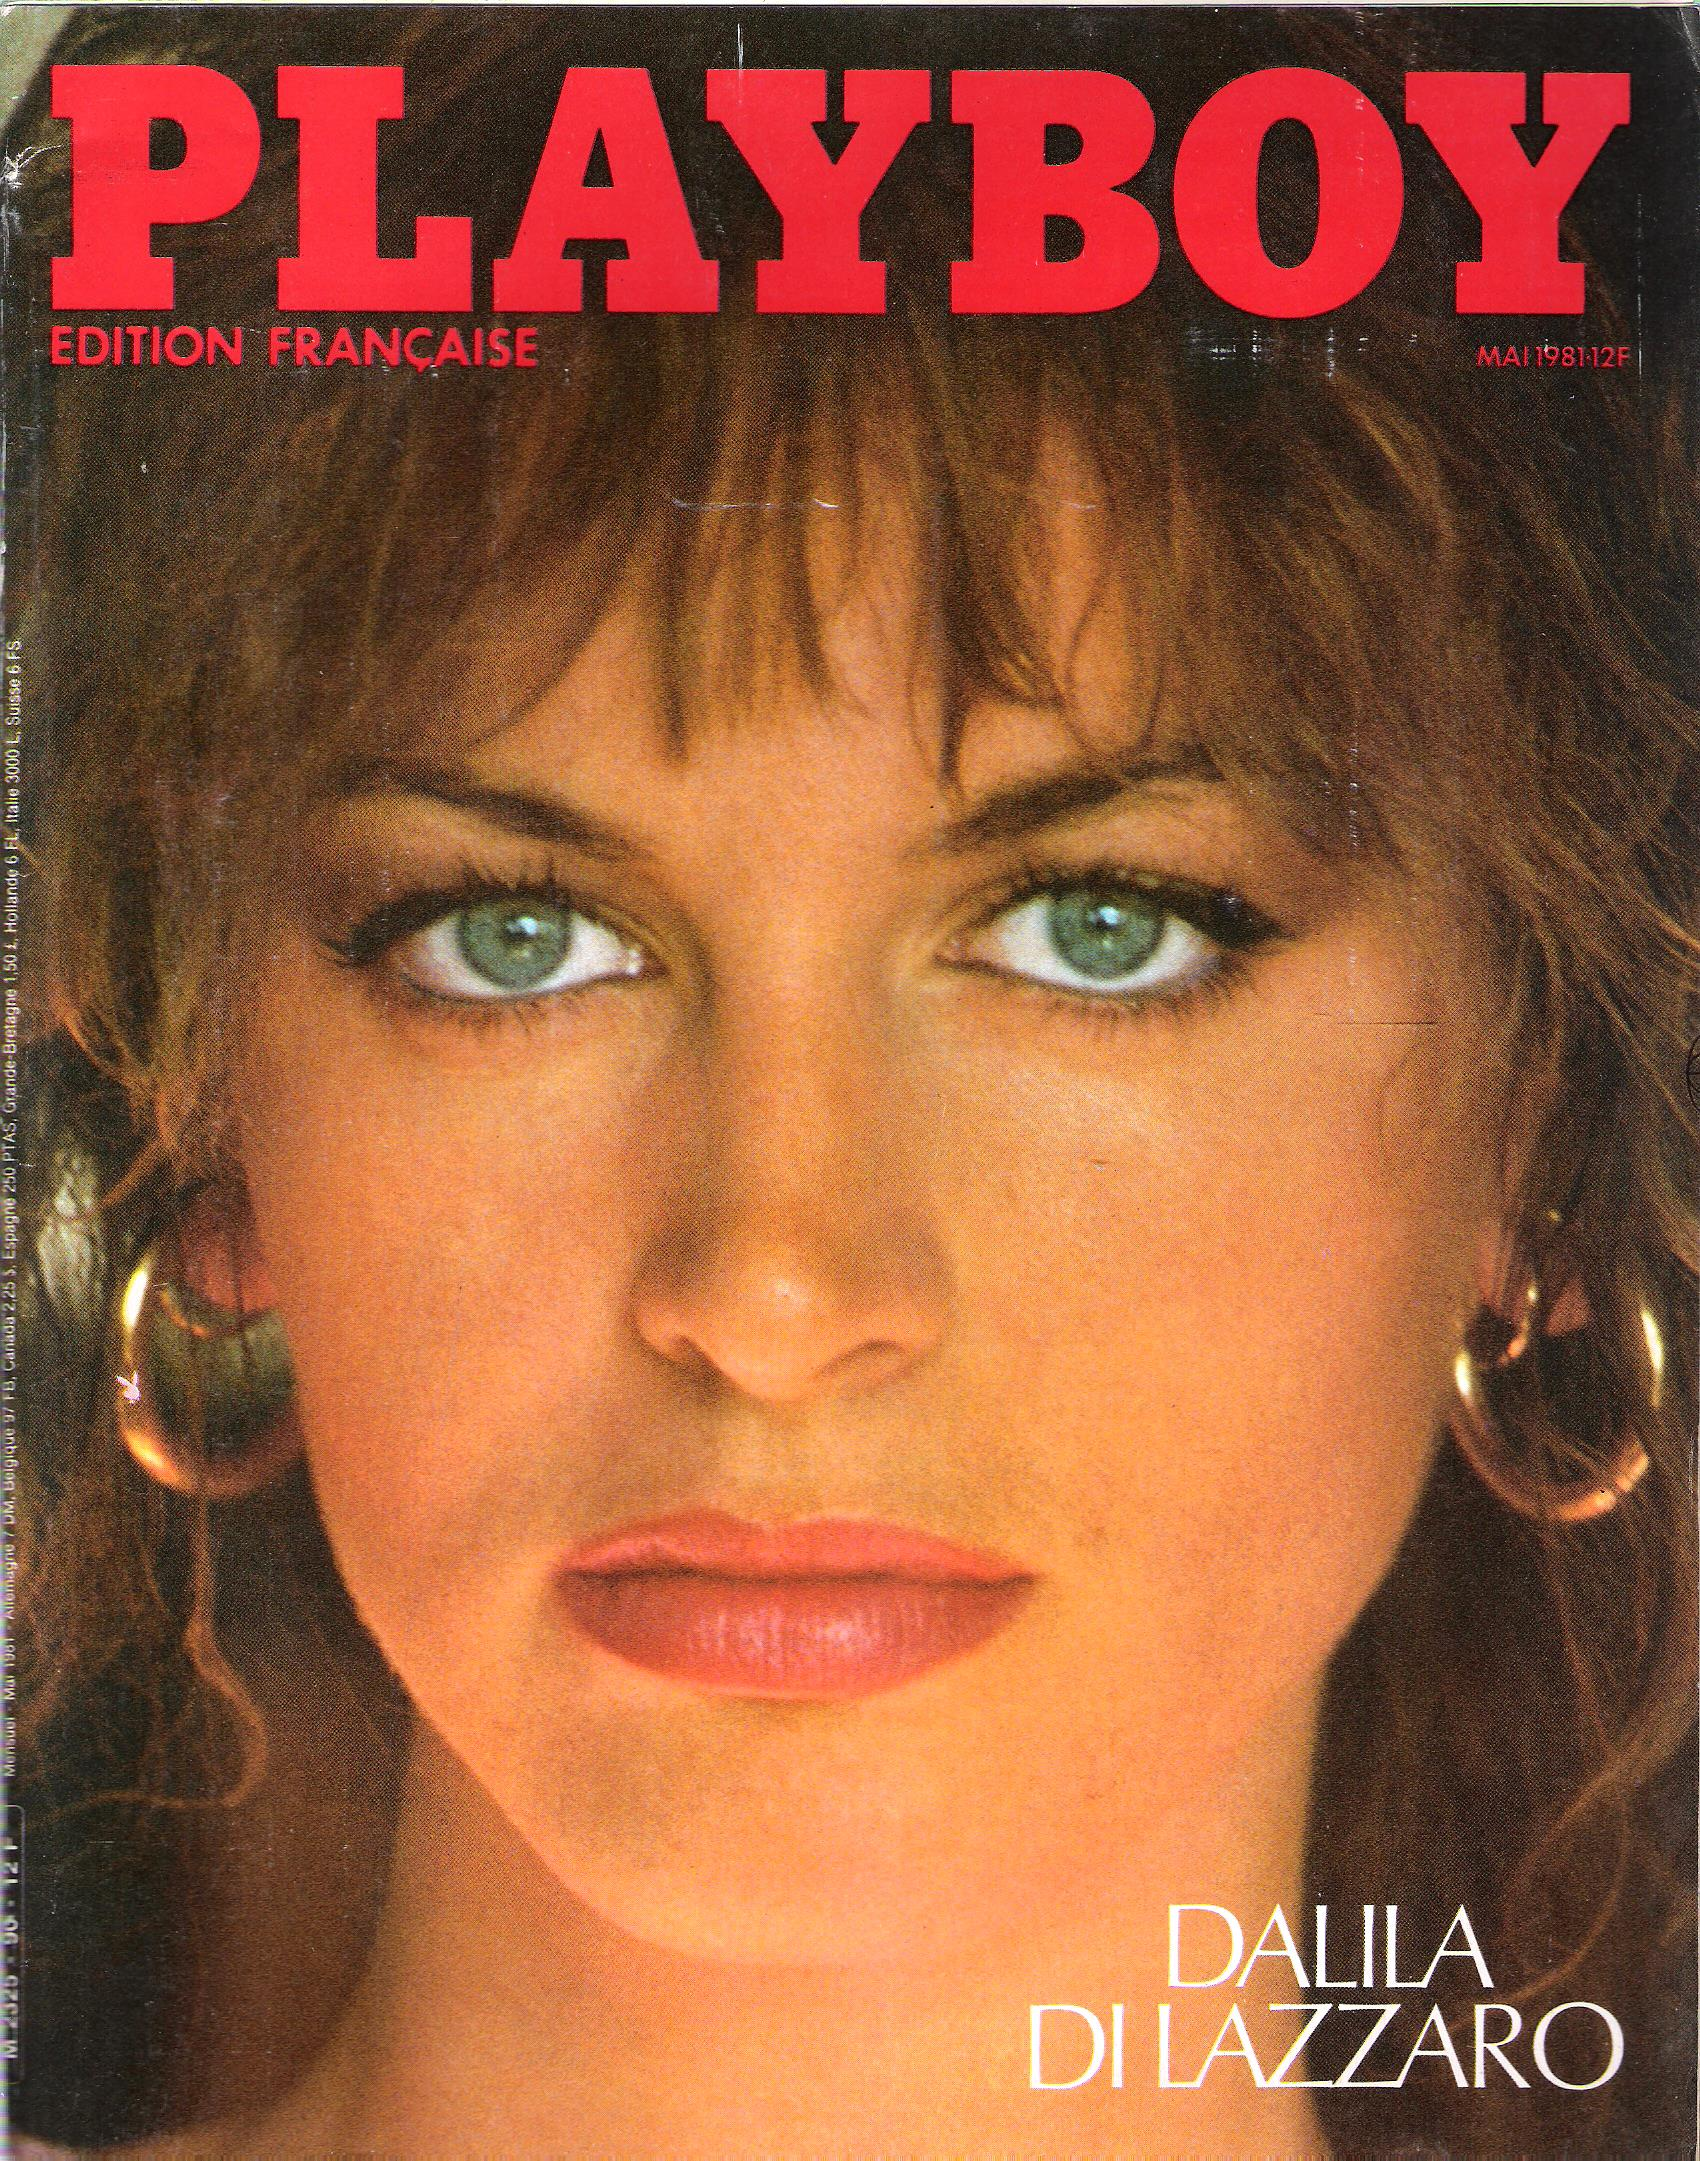 Image for Playboy Edition Francaise, Mai 1981.